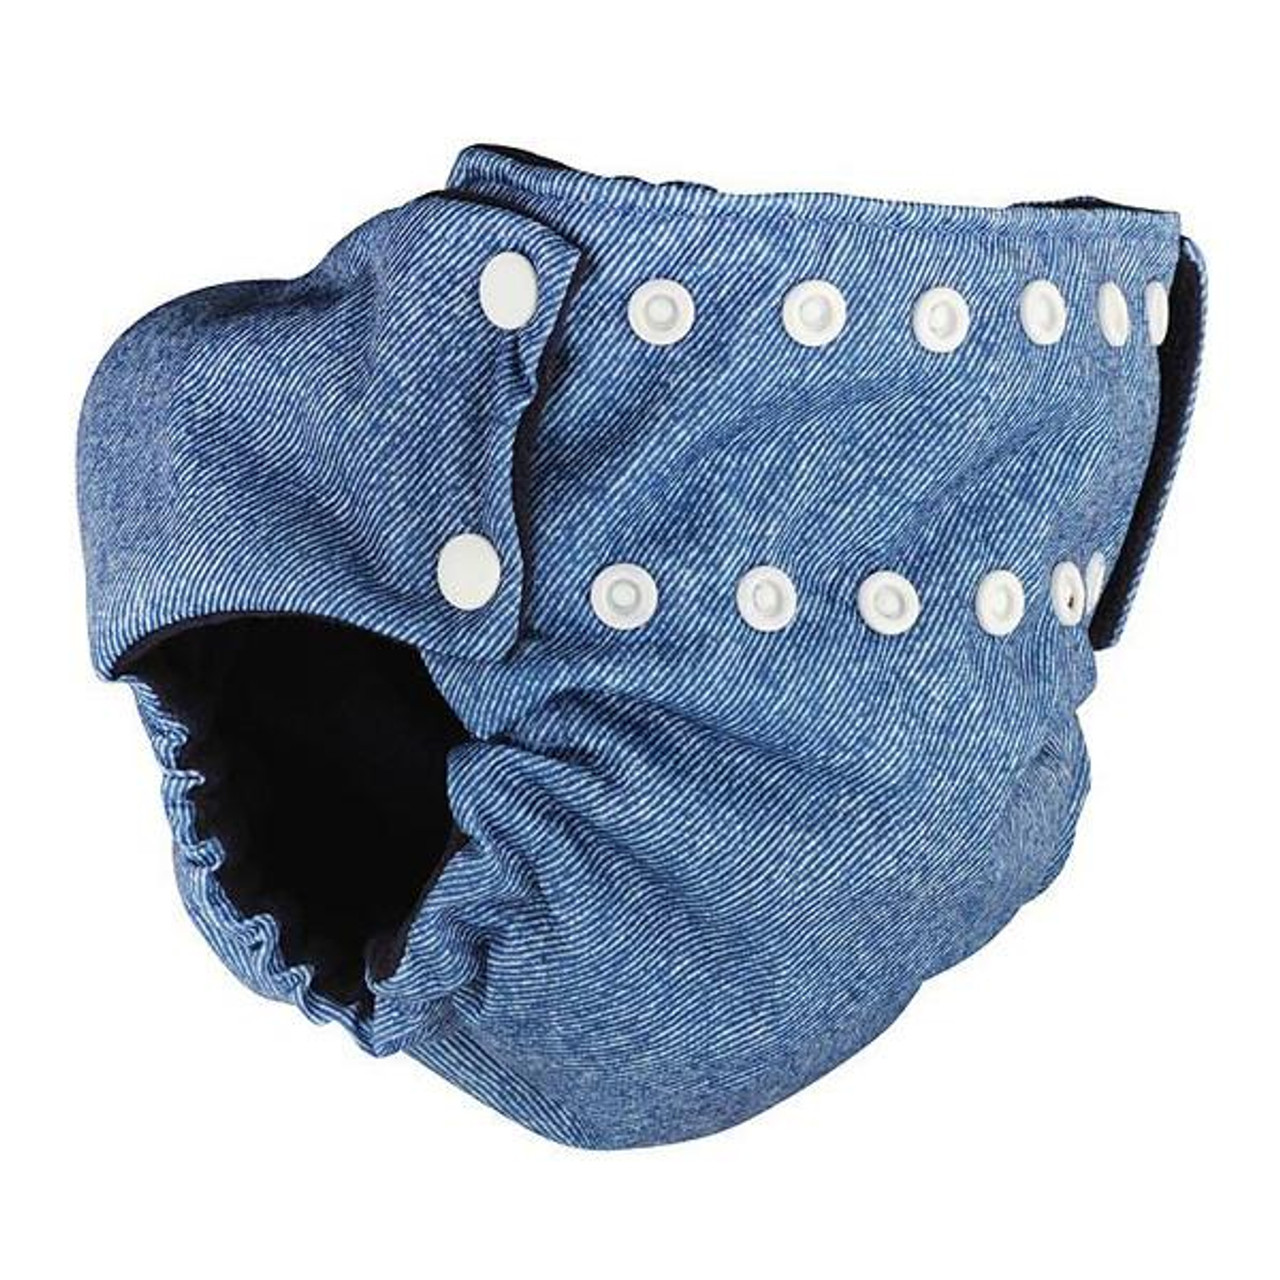 Pea Pods Modern Cloth Nappies One Size Fits Most at Baby Barn - Denim